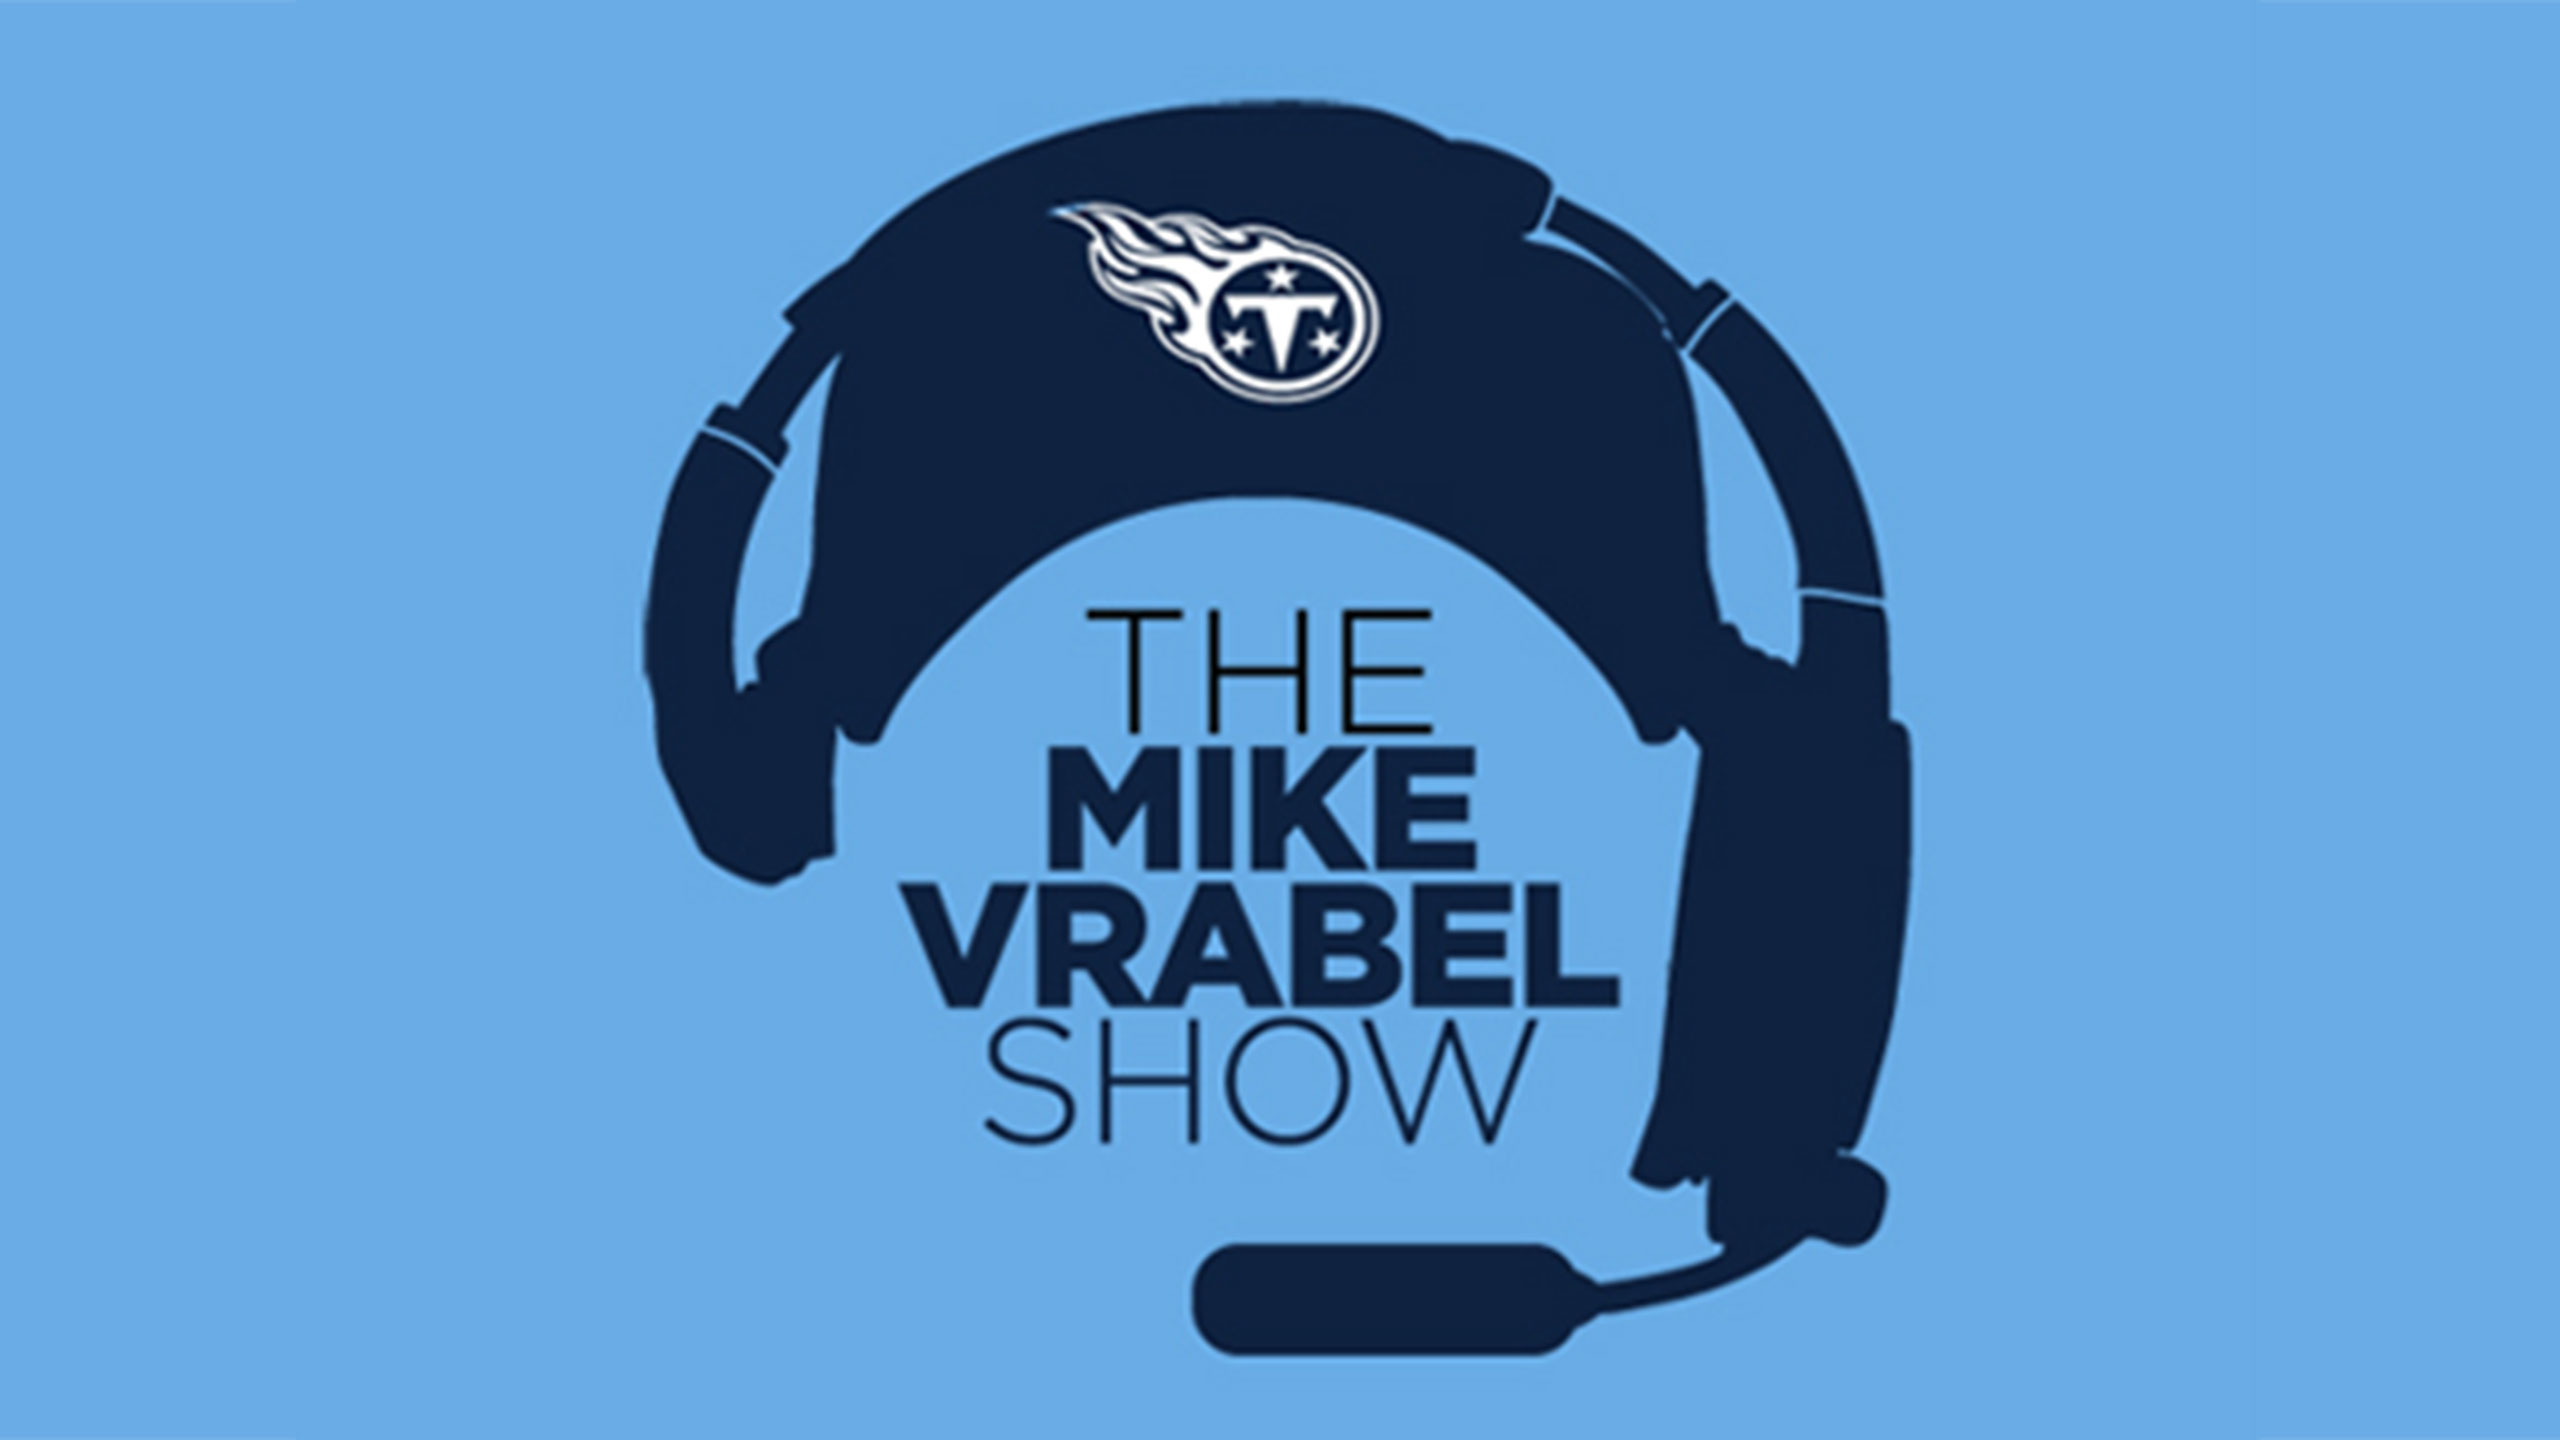 THE MIKE VRABEL SHOW